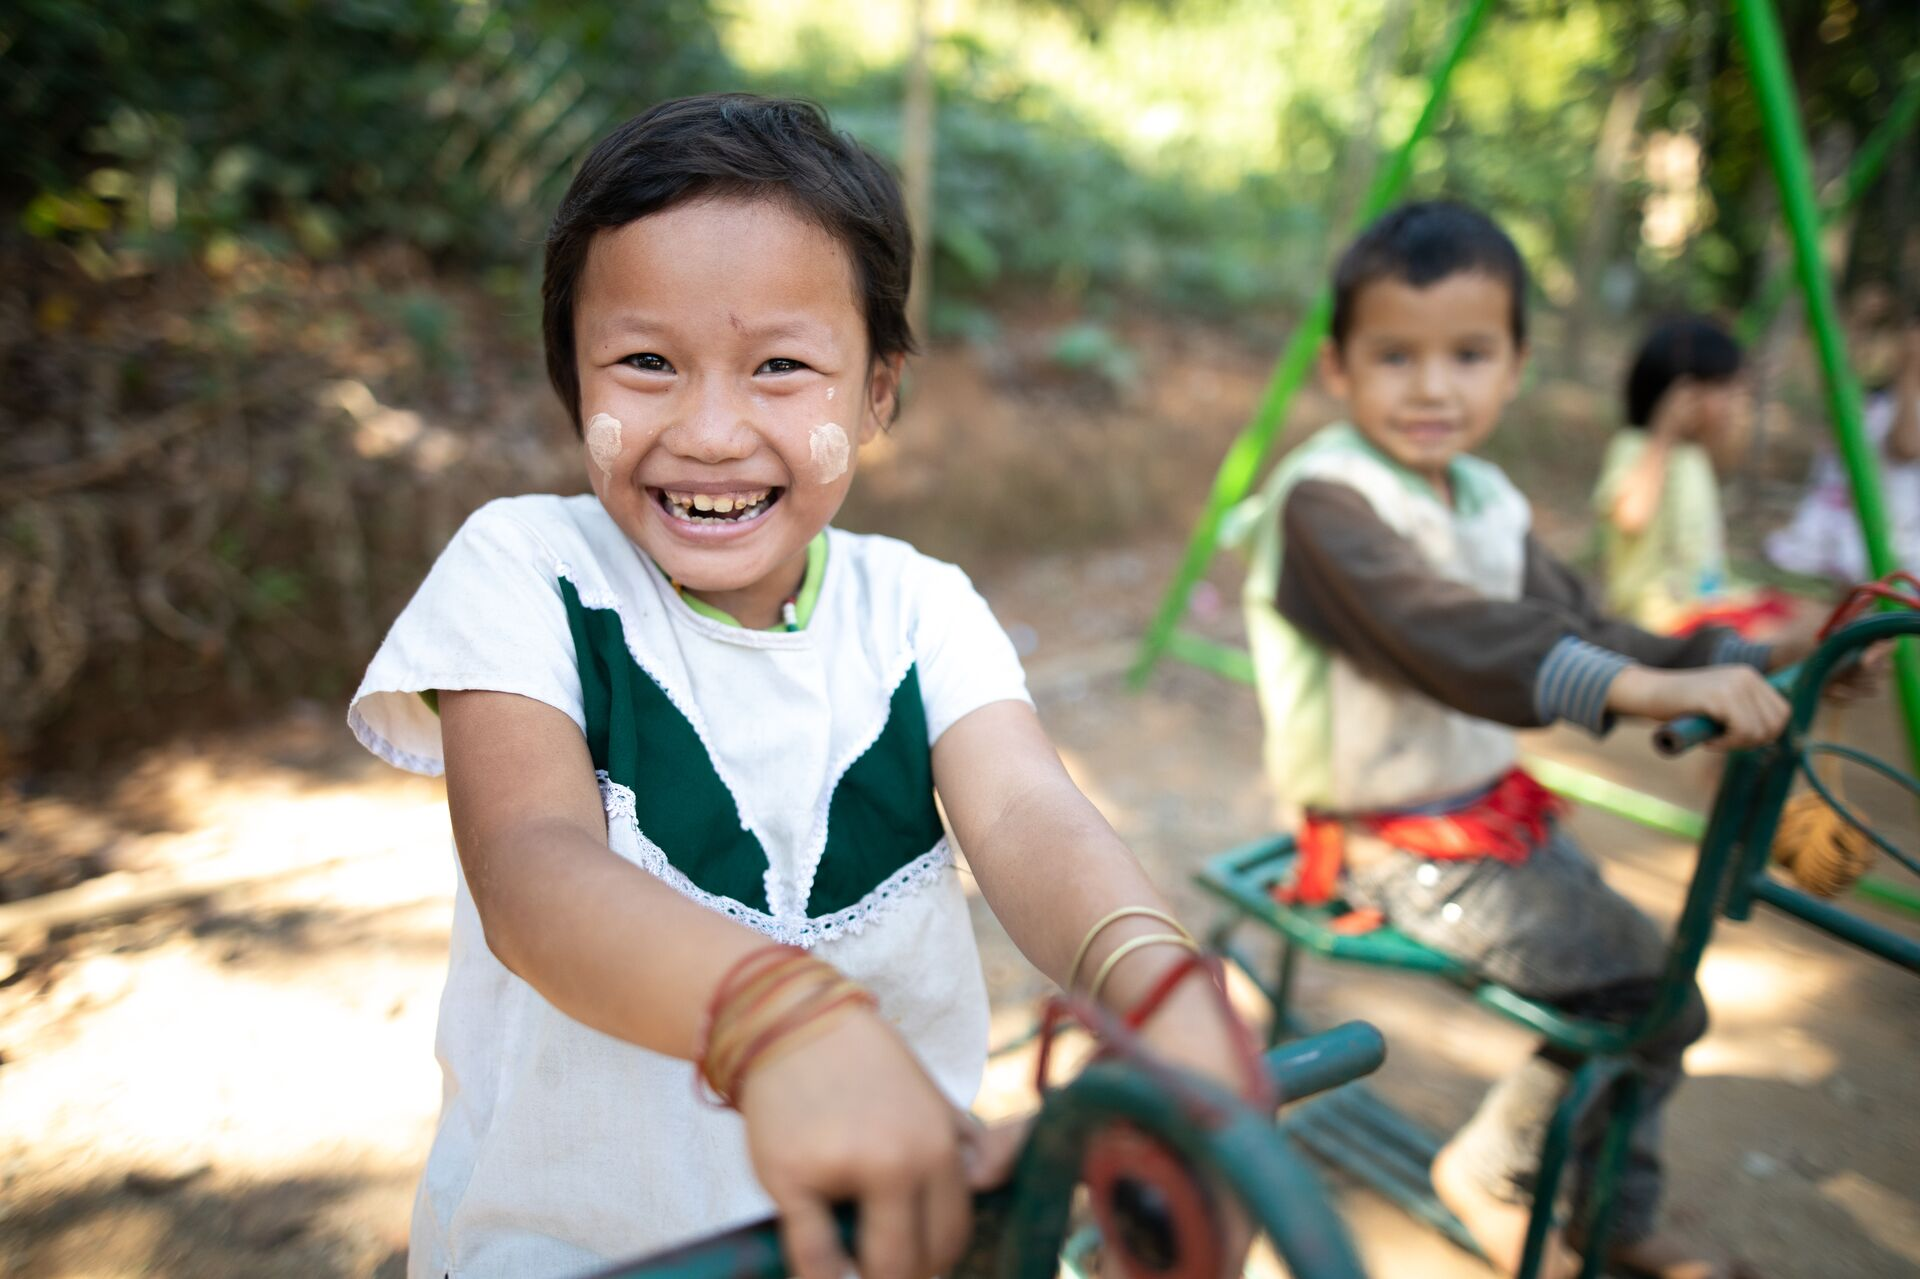 A Thai child in a white and green shirt plays on a playground structure. Other children are in the background.